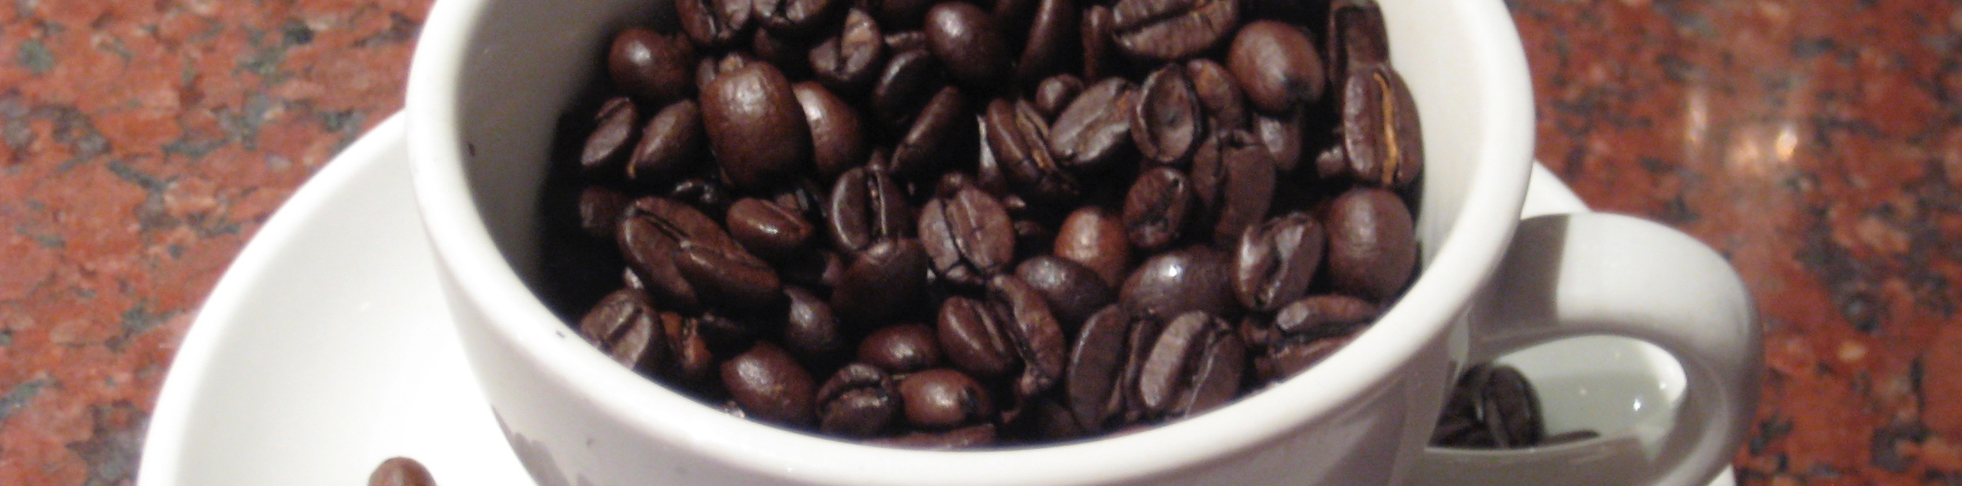 cup of coffee with coffee beans.